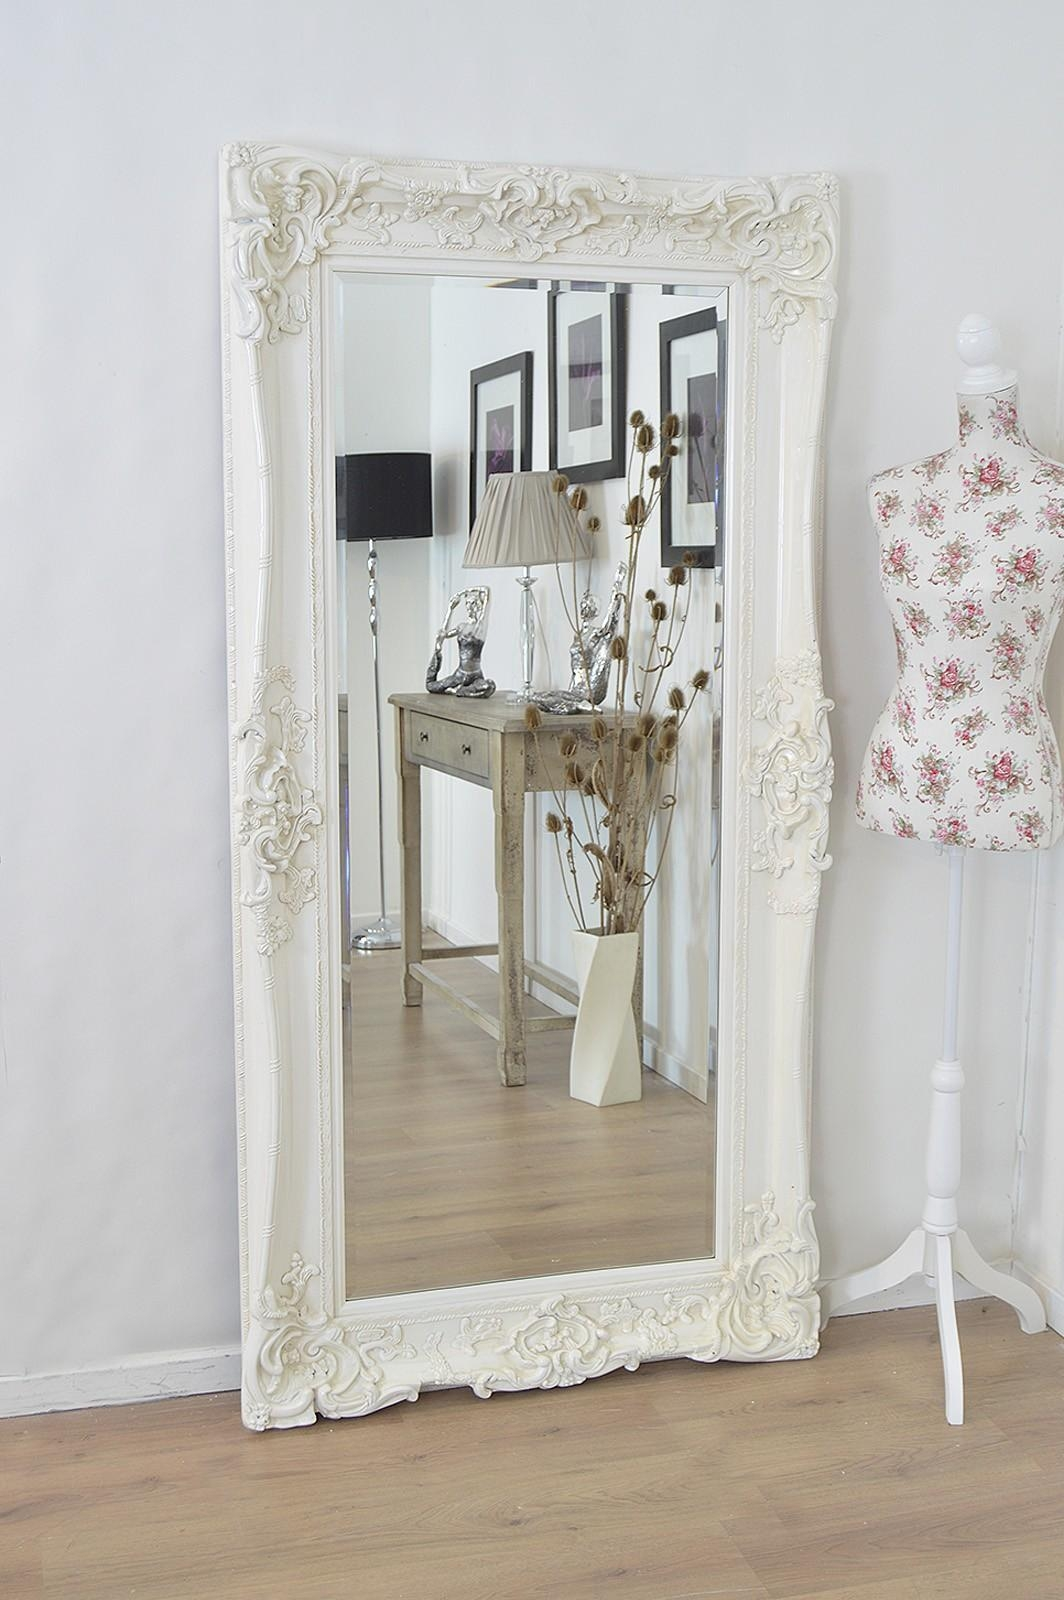 Shabby Chic Wall Mirror 22 Awesome Exterior With Large Silver Intended For Silver Ornate Wall Mirror (View 16 of 20)